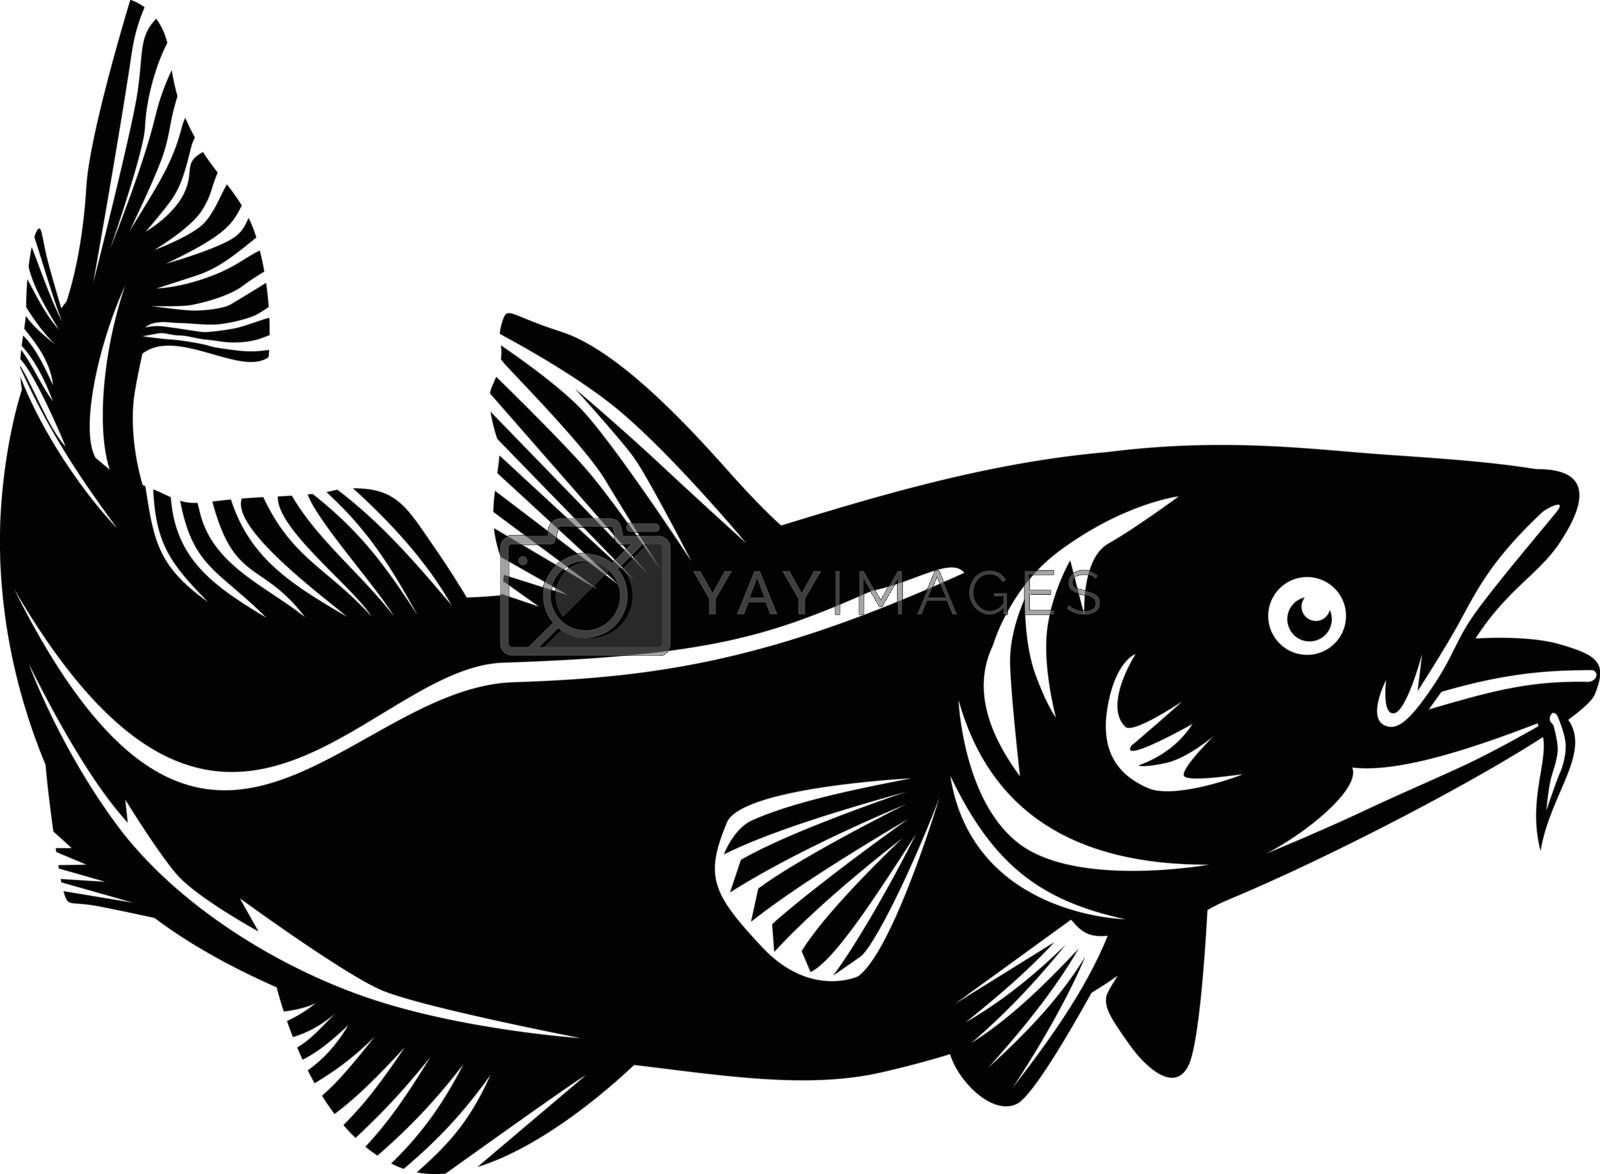 Woodcut style illustration of an Atlantic cod Gadus morhua, a benthopelagic fish of the family Gadidae commercially known as cod or codling swimming up on isolated background in black and white.